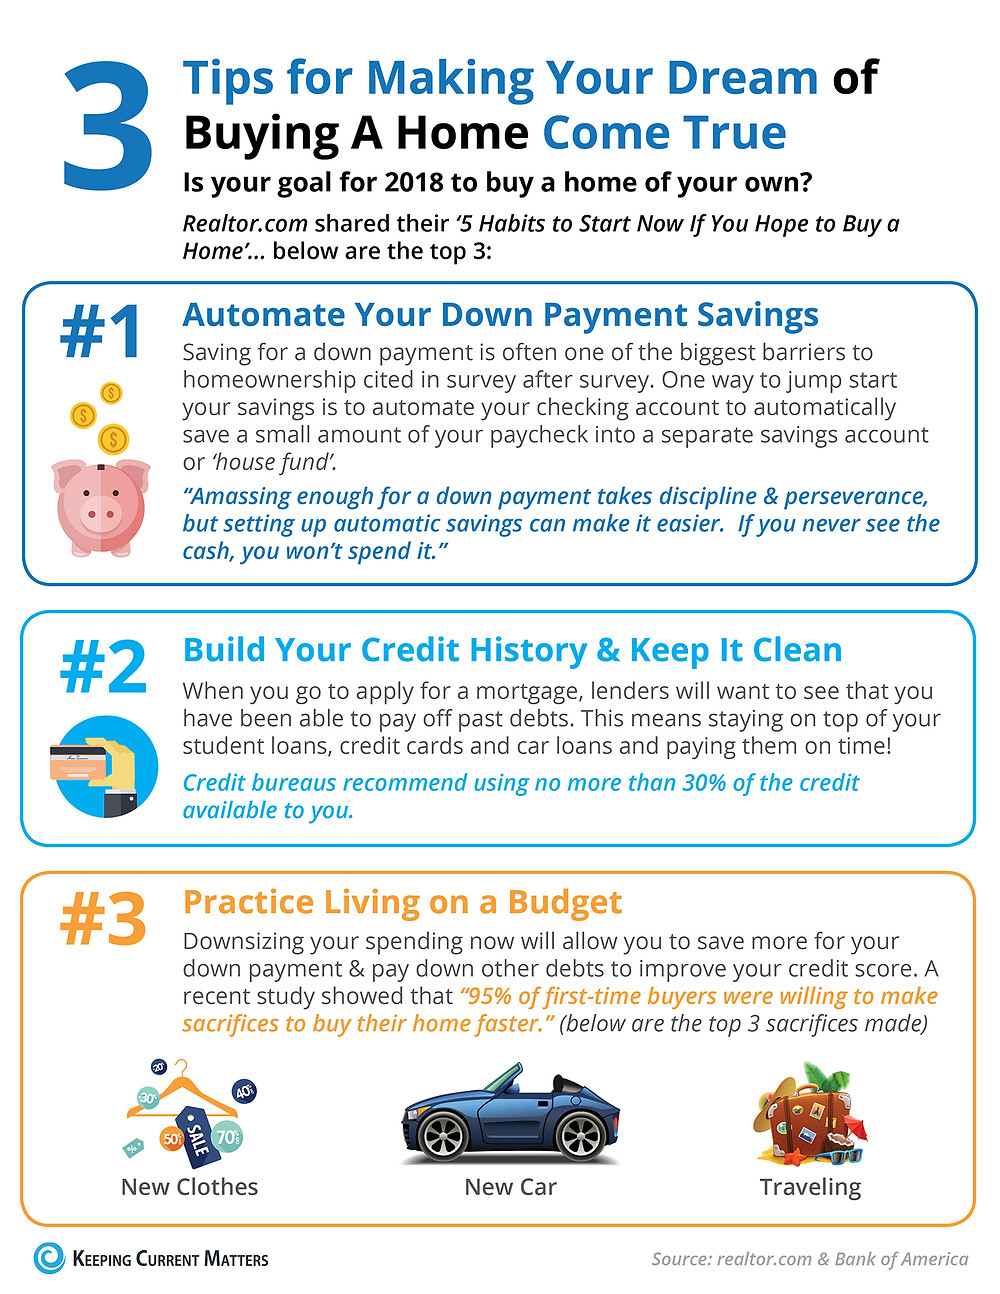 3 Tips for Making Your Dream Home a Reality [INFOGRAPHIC] | Keeping Current Matters